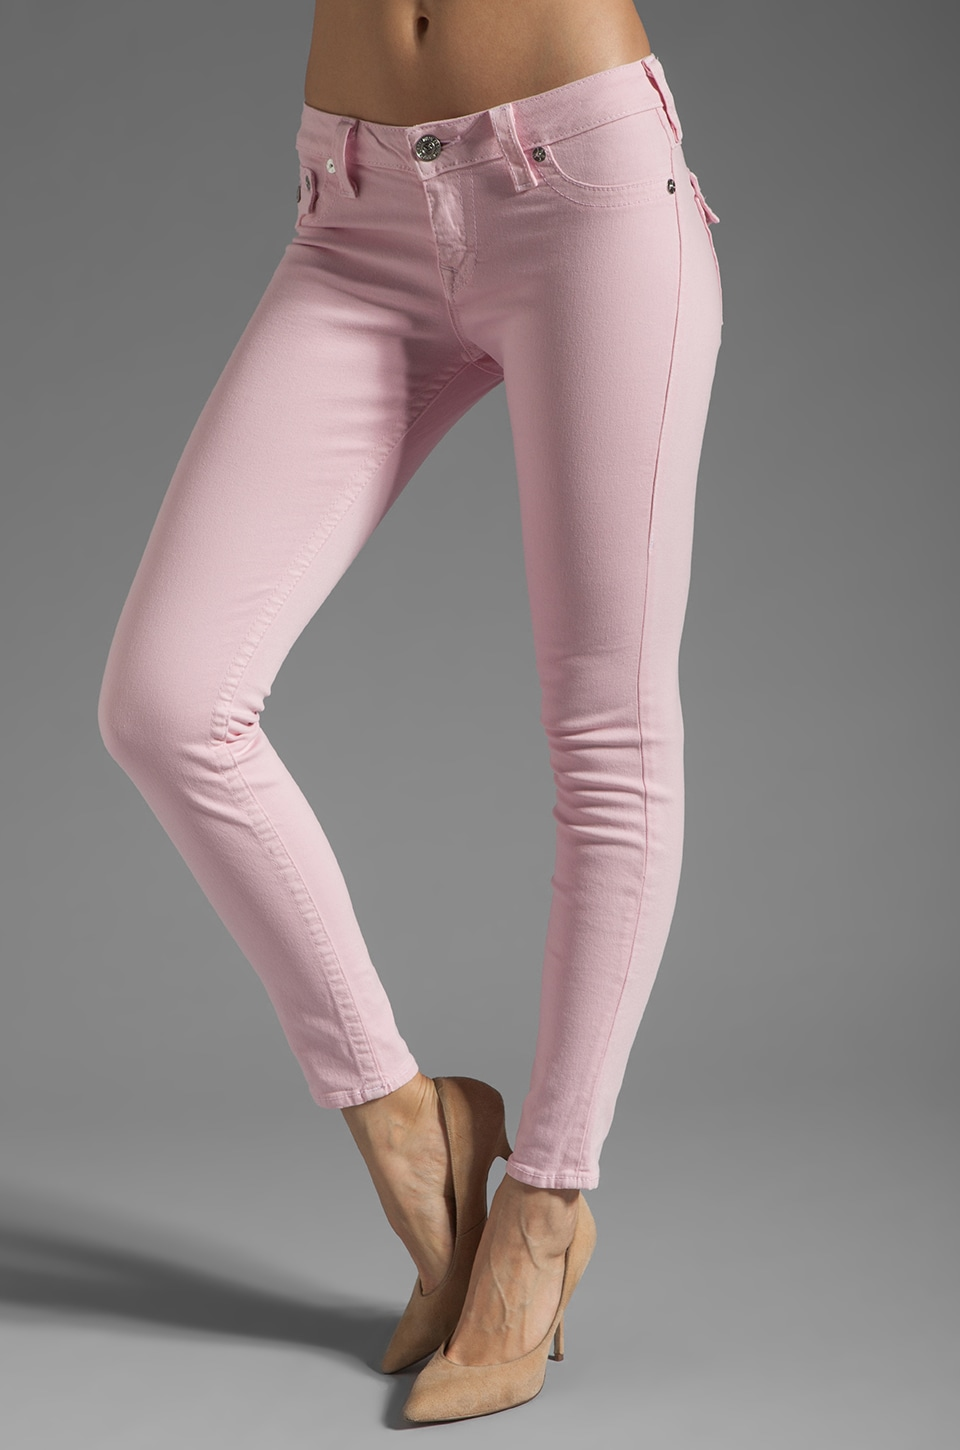 True Religion Serena Skinny Legging in Baby Pink